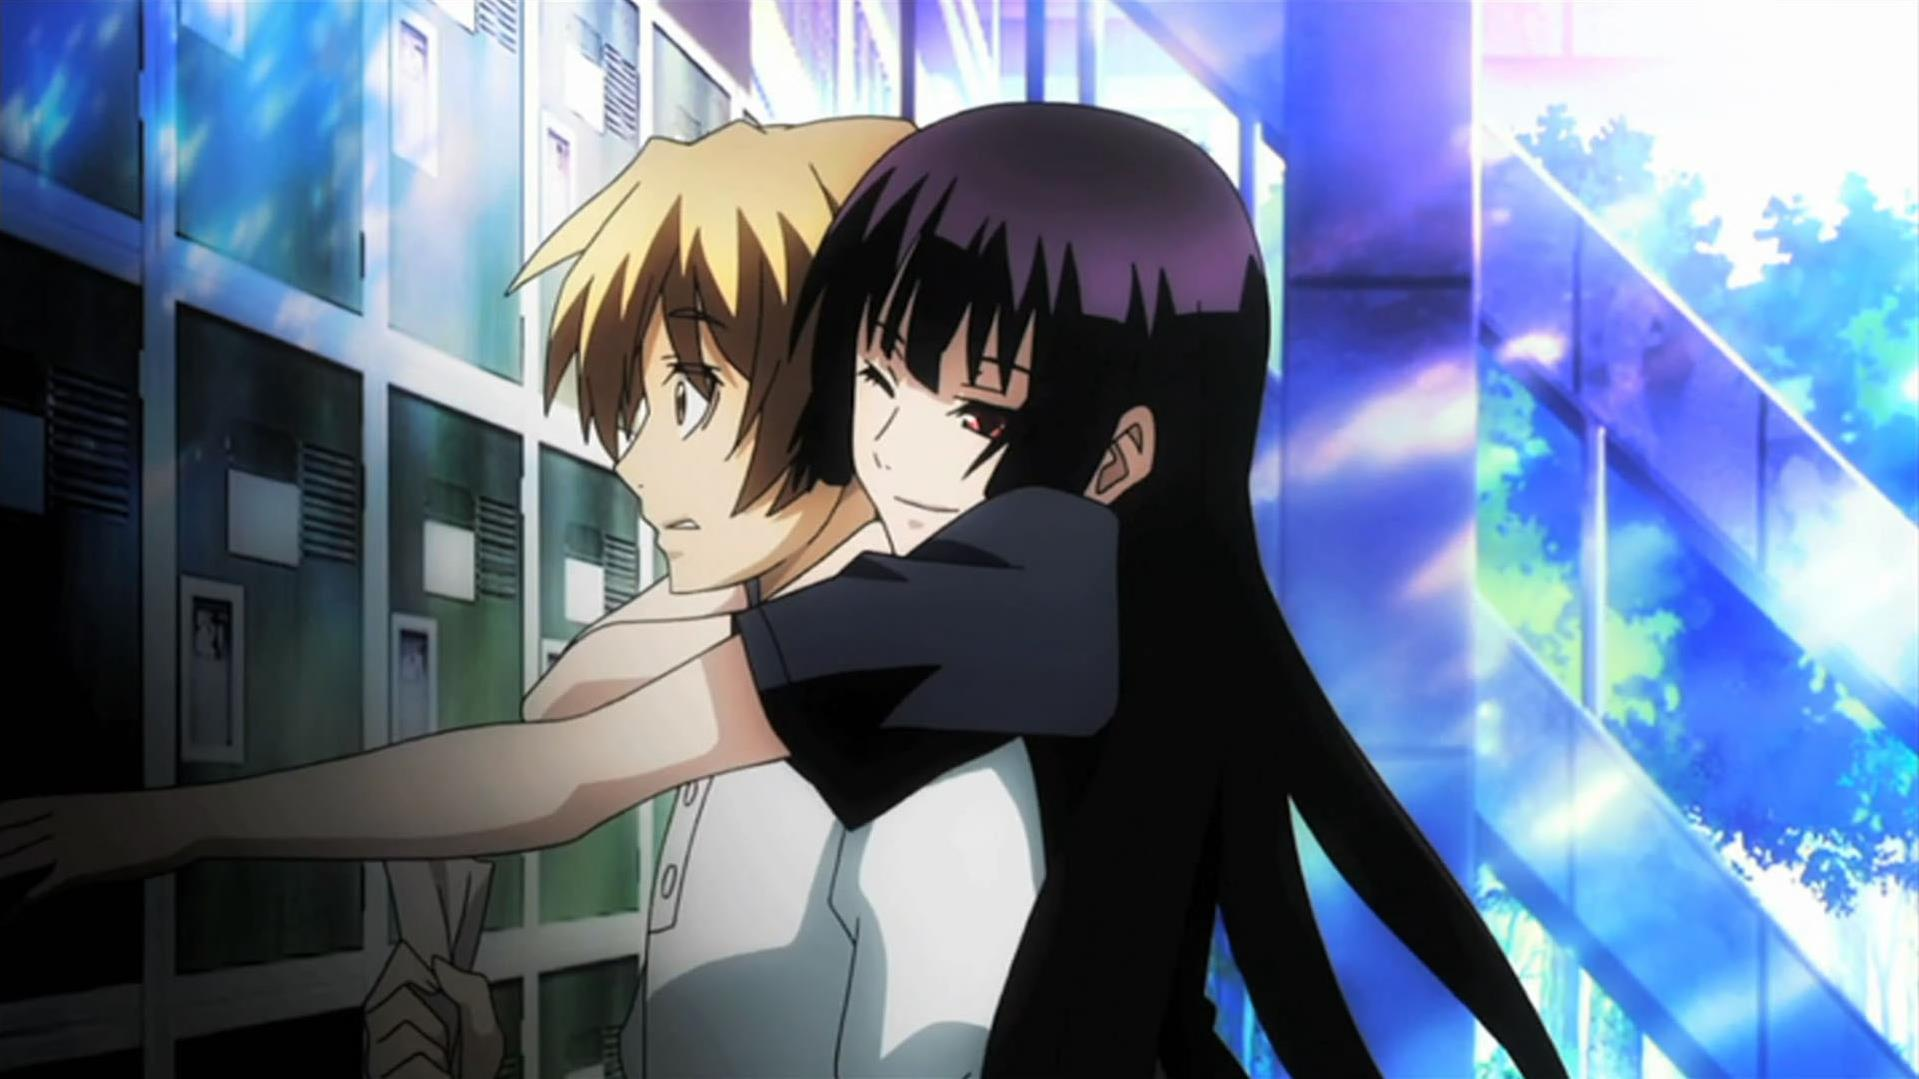 Of love stories in anime you must watch these heart wrenching series these series are full of emotional roller coasters